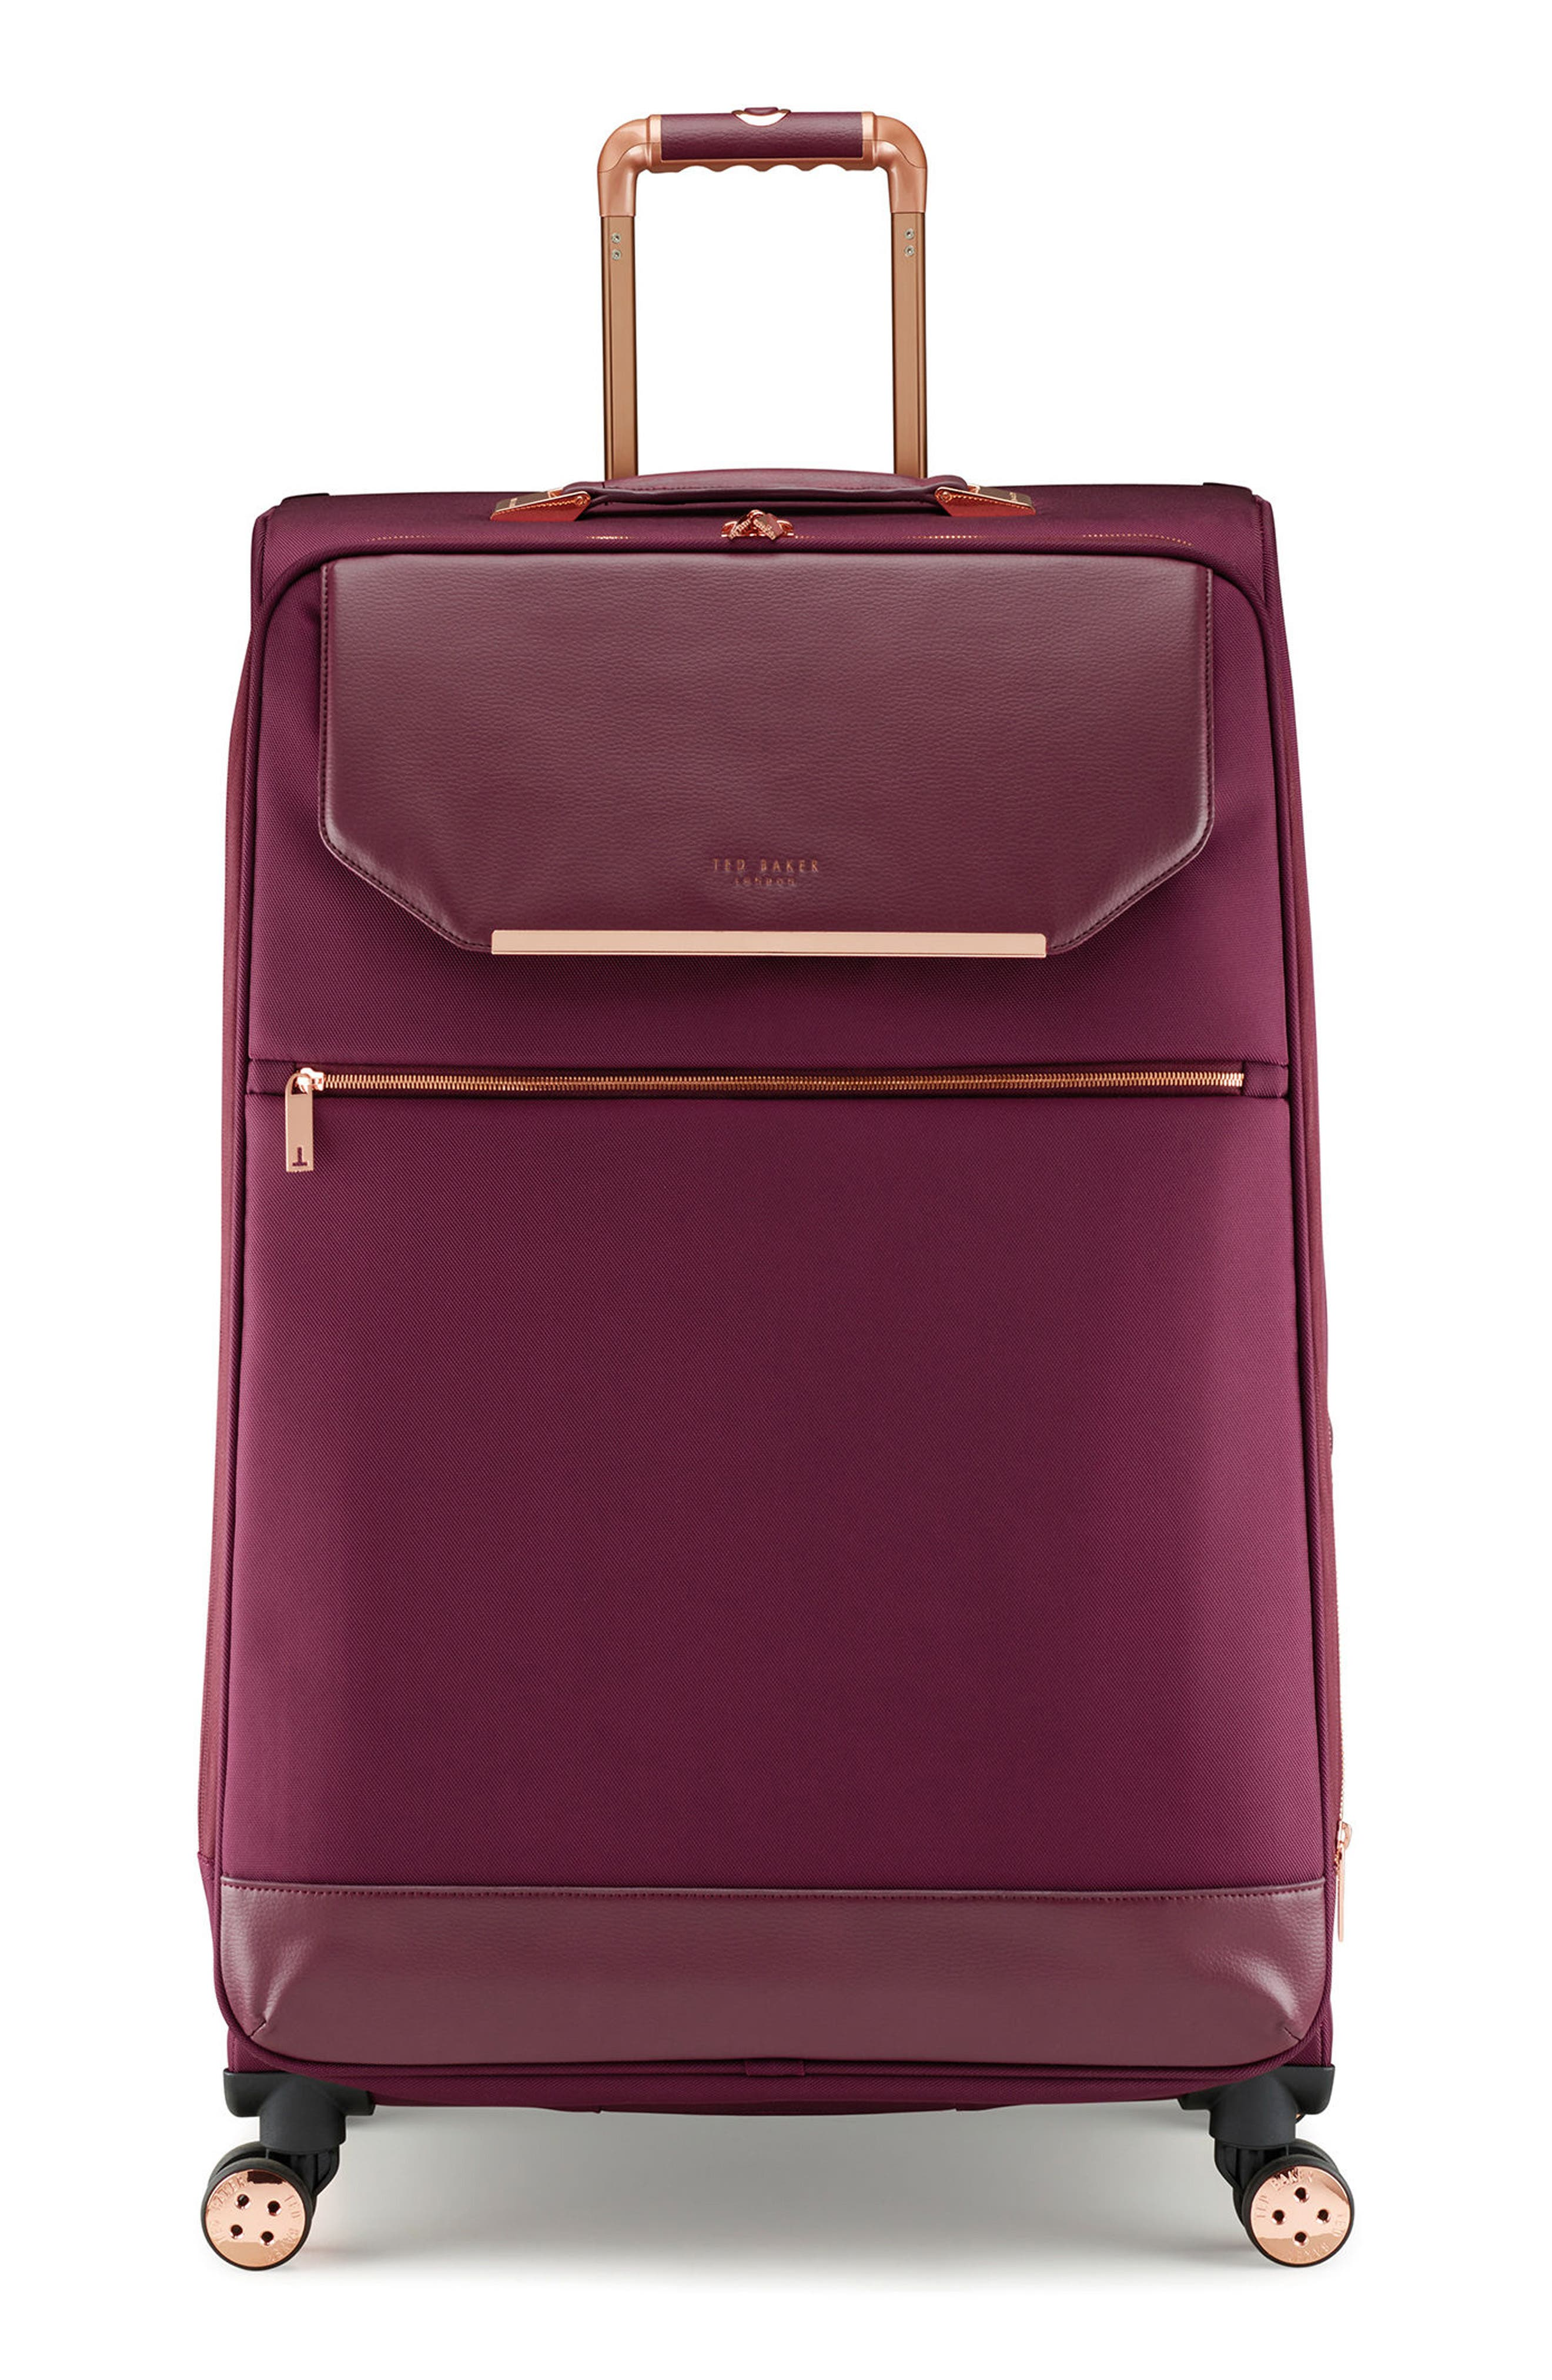 33-Inch Spinner Trolley Packing Case,                         Main,                         color, Burgundy